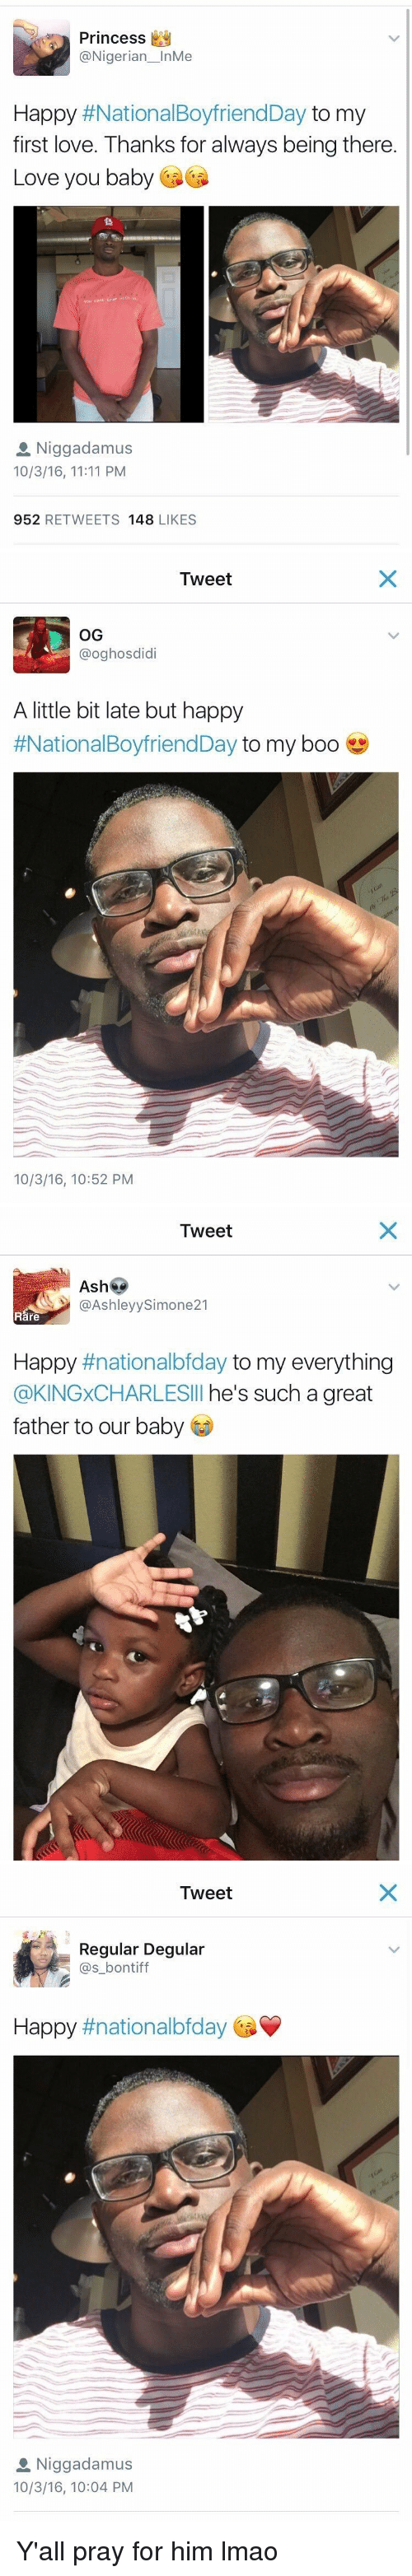 Baby, It's Cold Outside: Princess  @Nigerian  InMe  Happy  #National BoyfriendDay  to my  first love. Thanks for always being there.  Love you baby  cast tran  a Niggadamus  10/3/16, 11:11 PM  952  RETWEETS 148  LIKES   Tweet  OG  @oghosdidi  A little bit late but happy  #National BoyfriendDay to my boo  10/3/16, 10:52 PM   Tweet  Ashe  (a Ashley Simone21  Rare  Happy  nationalbfday to my everything  @KINGxCHARLESIll he's such a great  father to our baby   Tweet  Regular Degular  (as bontiff  Happy  #nationalbfday  a Niggadamus  10/3/16, 10:04 PM Y'all pray for him lmao